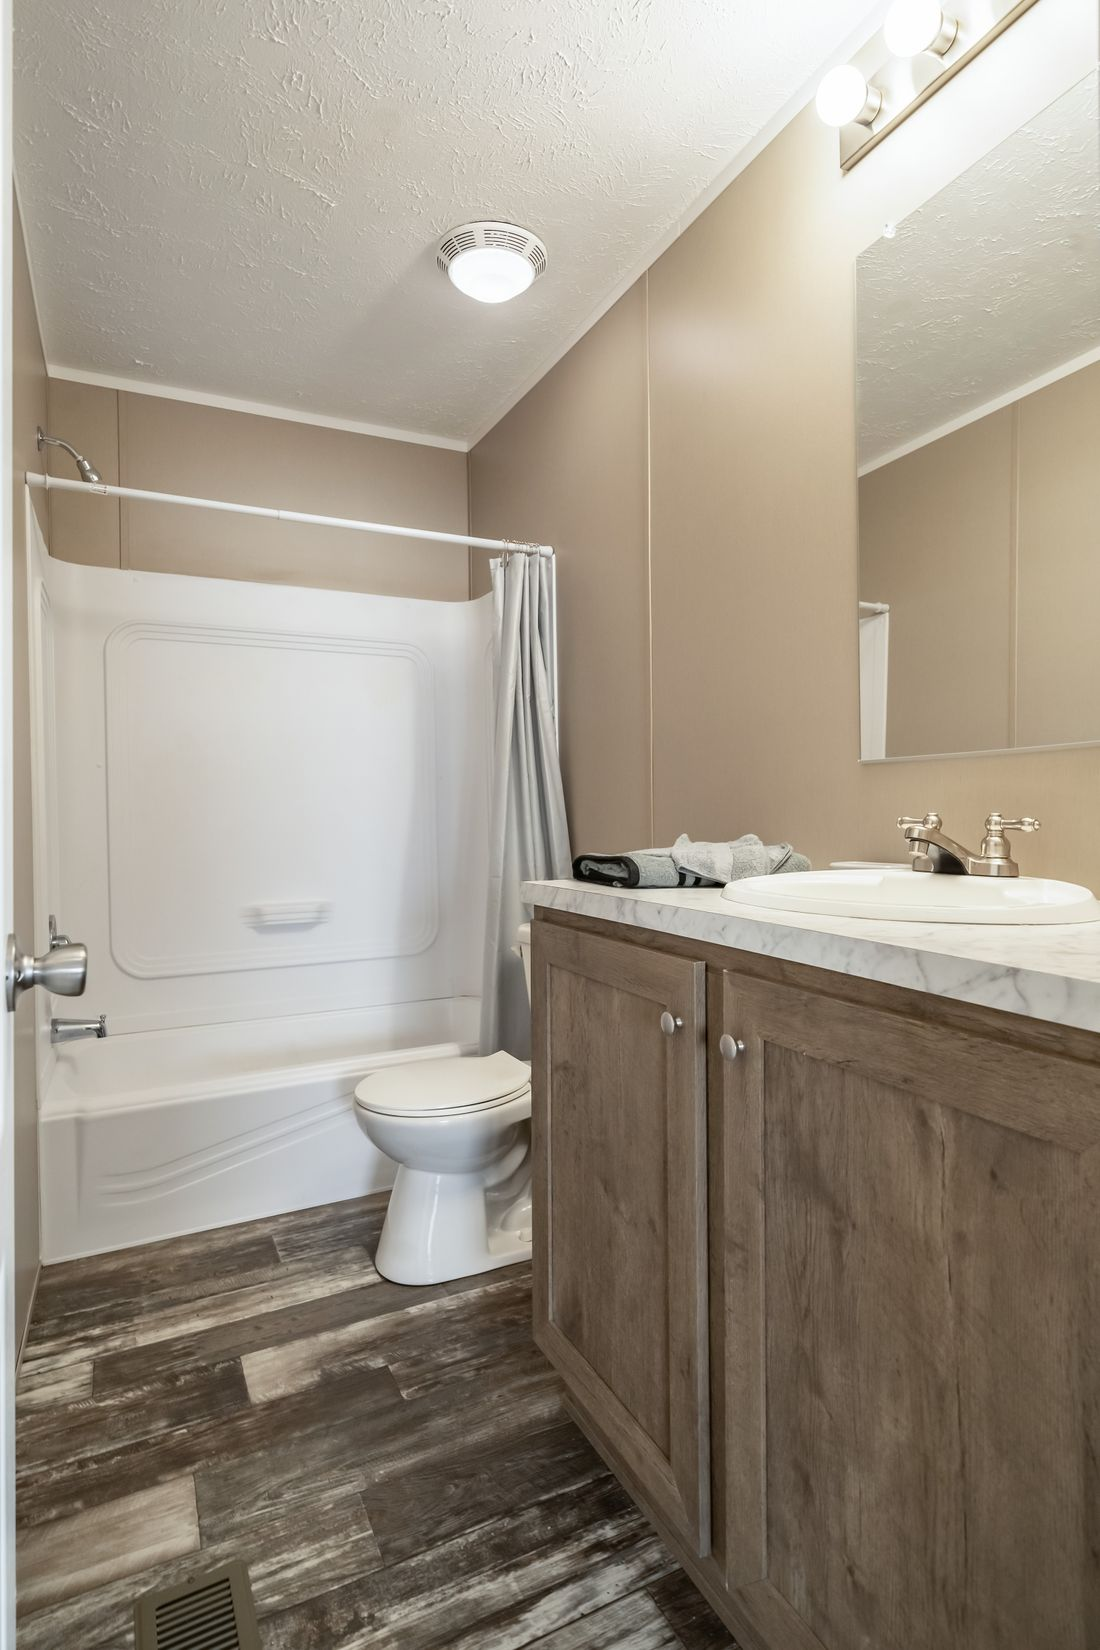 The ULTRA PRO 60 Guest Bathroom. This Manufactured Mobile Home features 3 bedrooms and 2 baths.